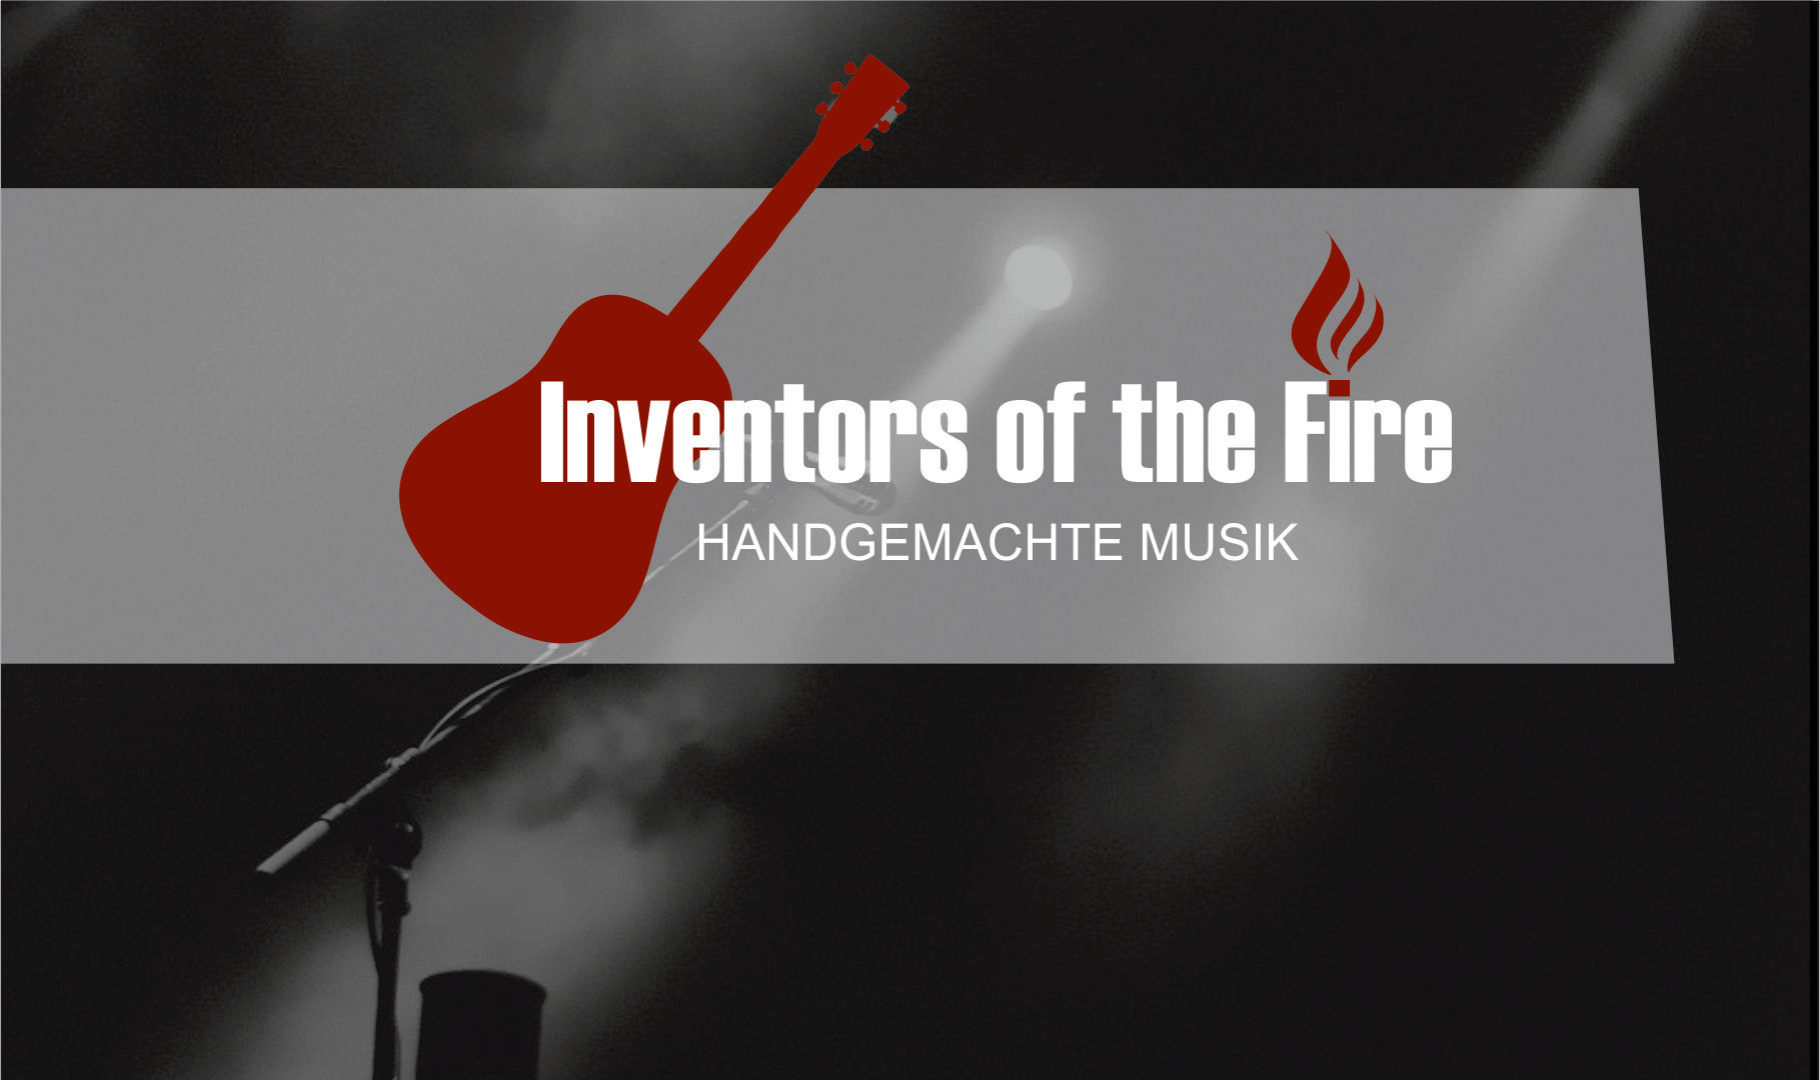 Inventors of the Fire